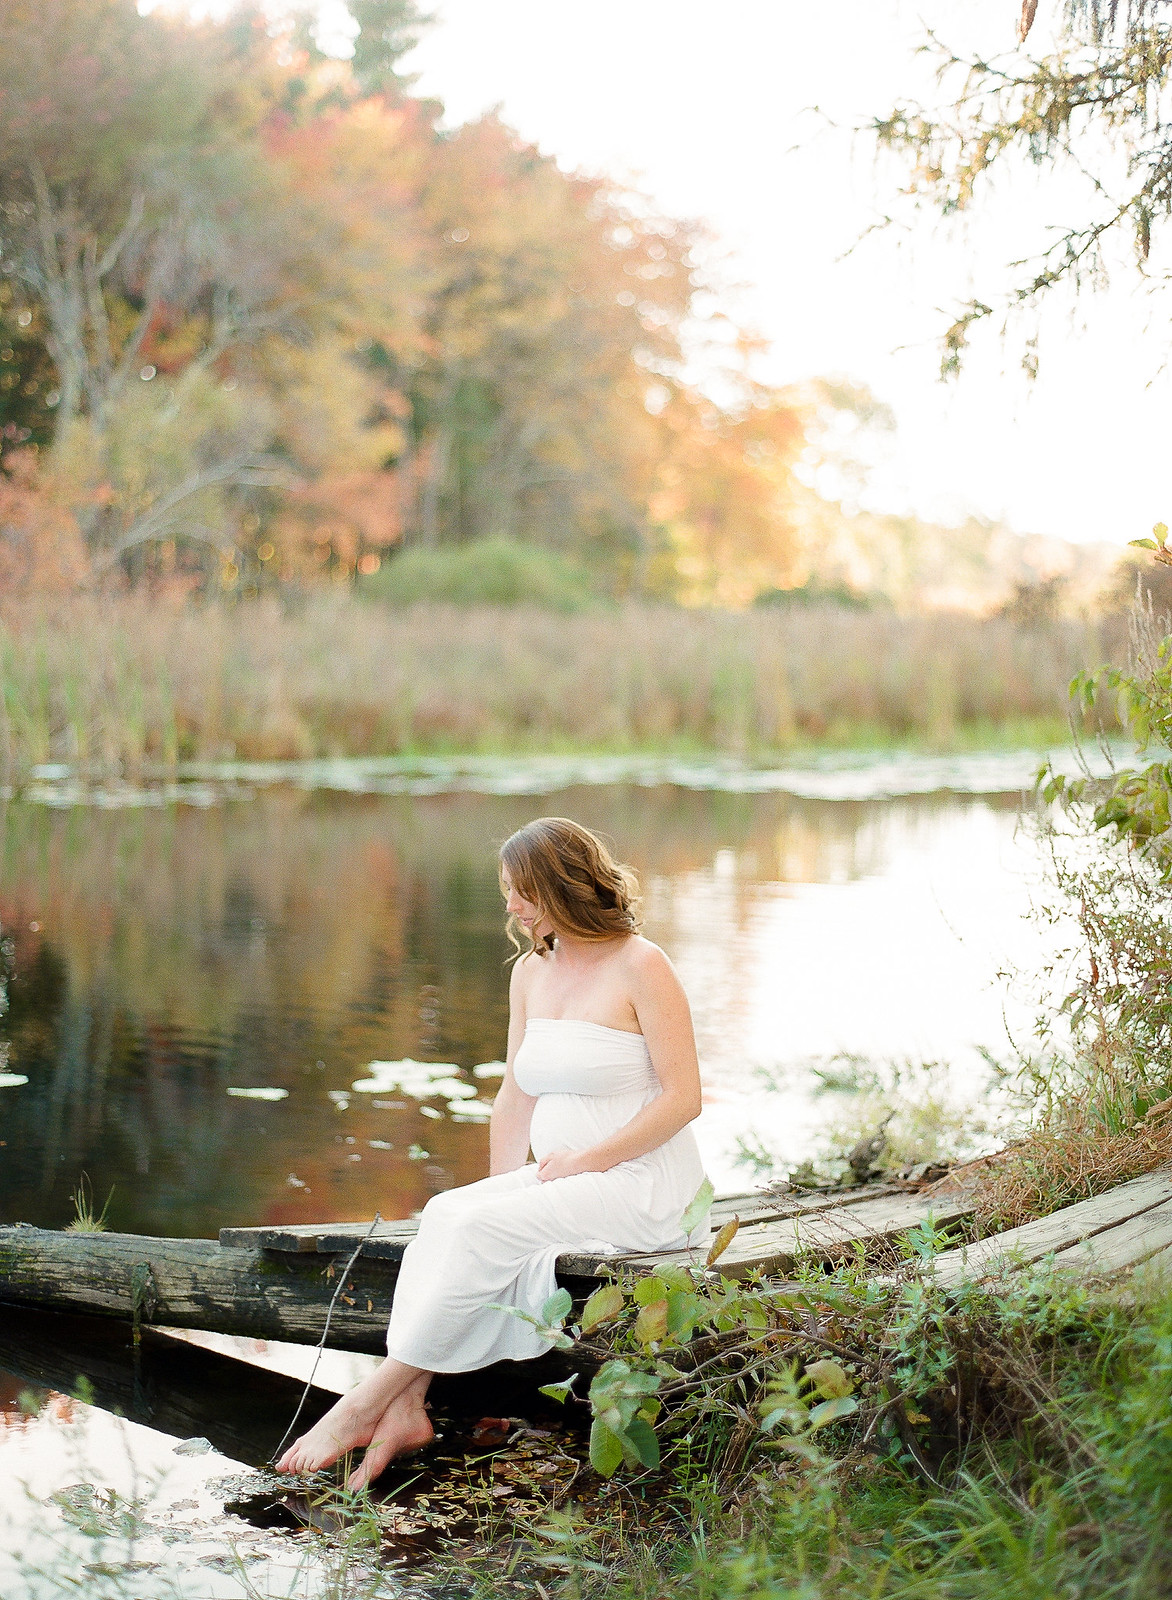 mandy mayberry photography boston and rhode island maternity and wedding film photographer